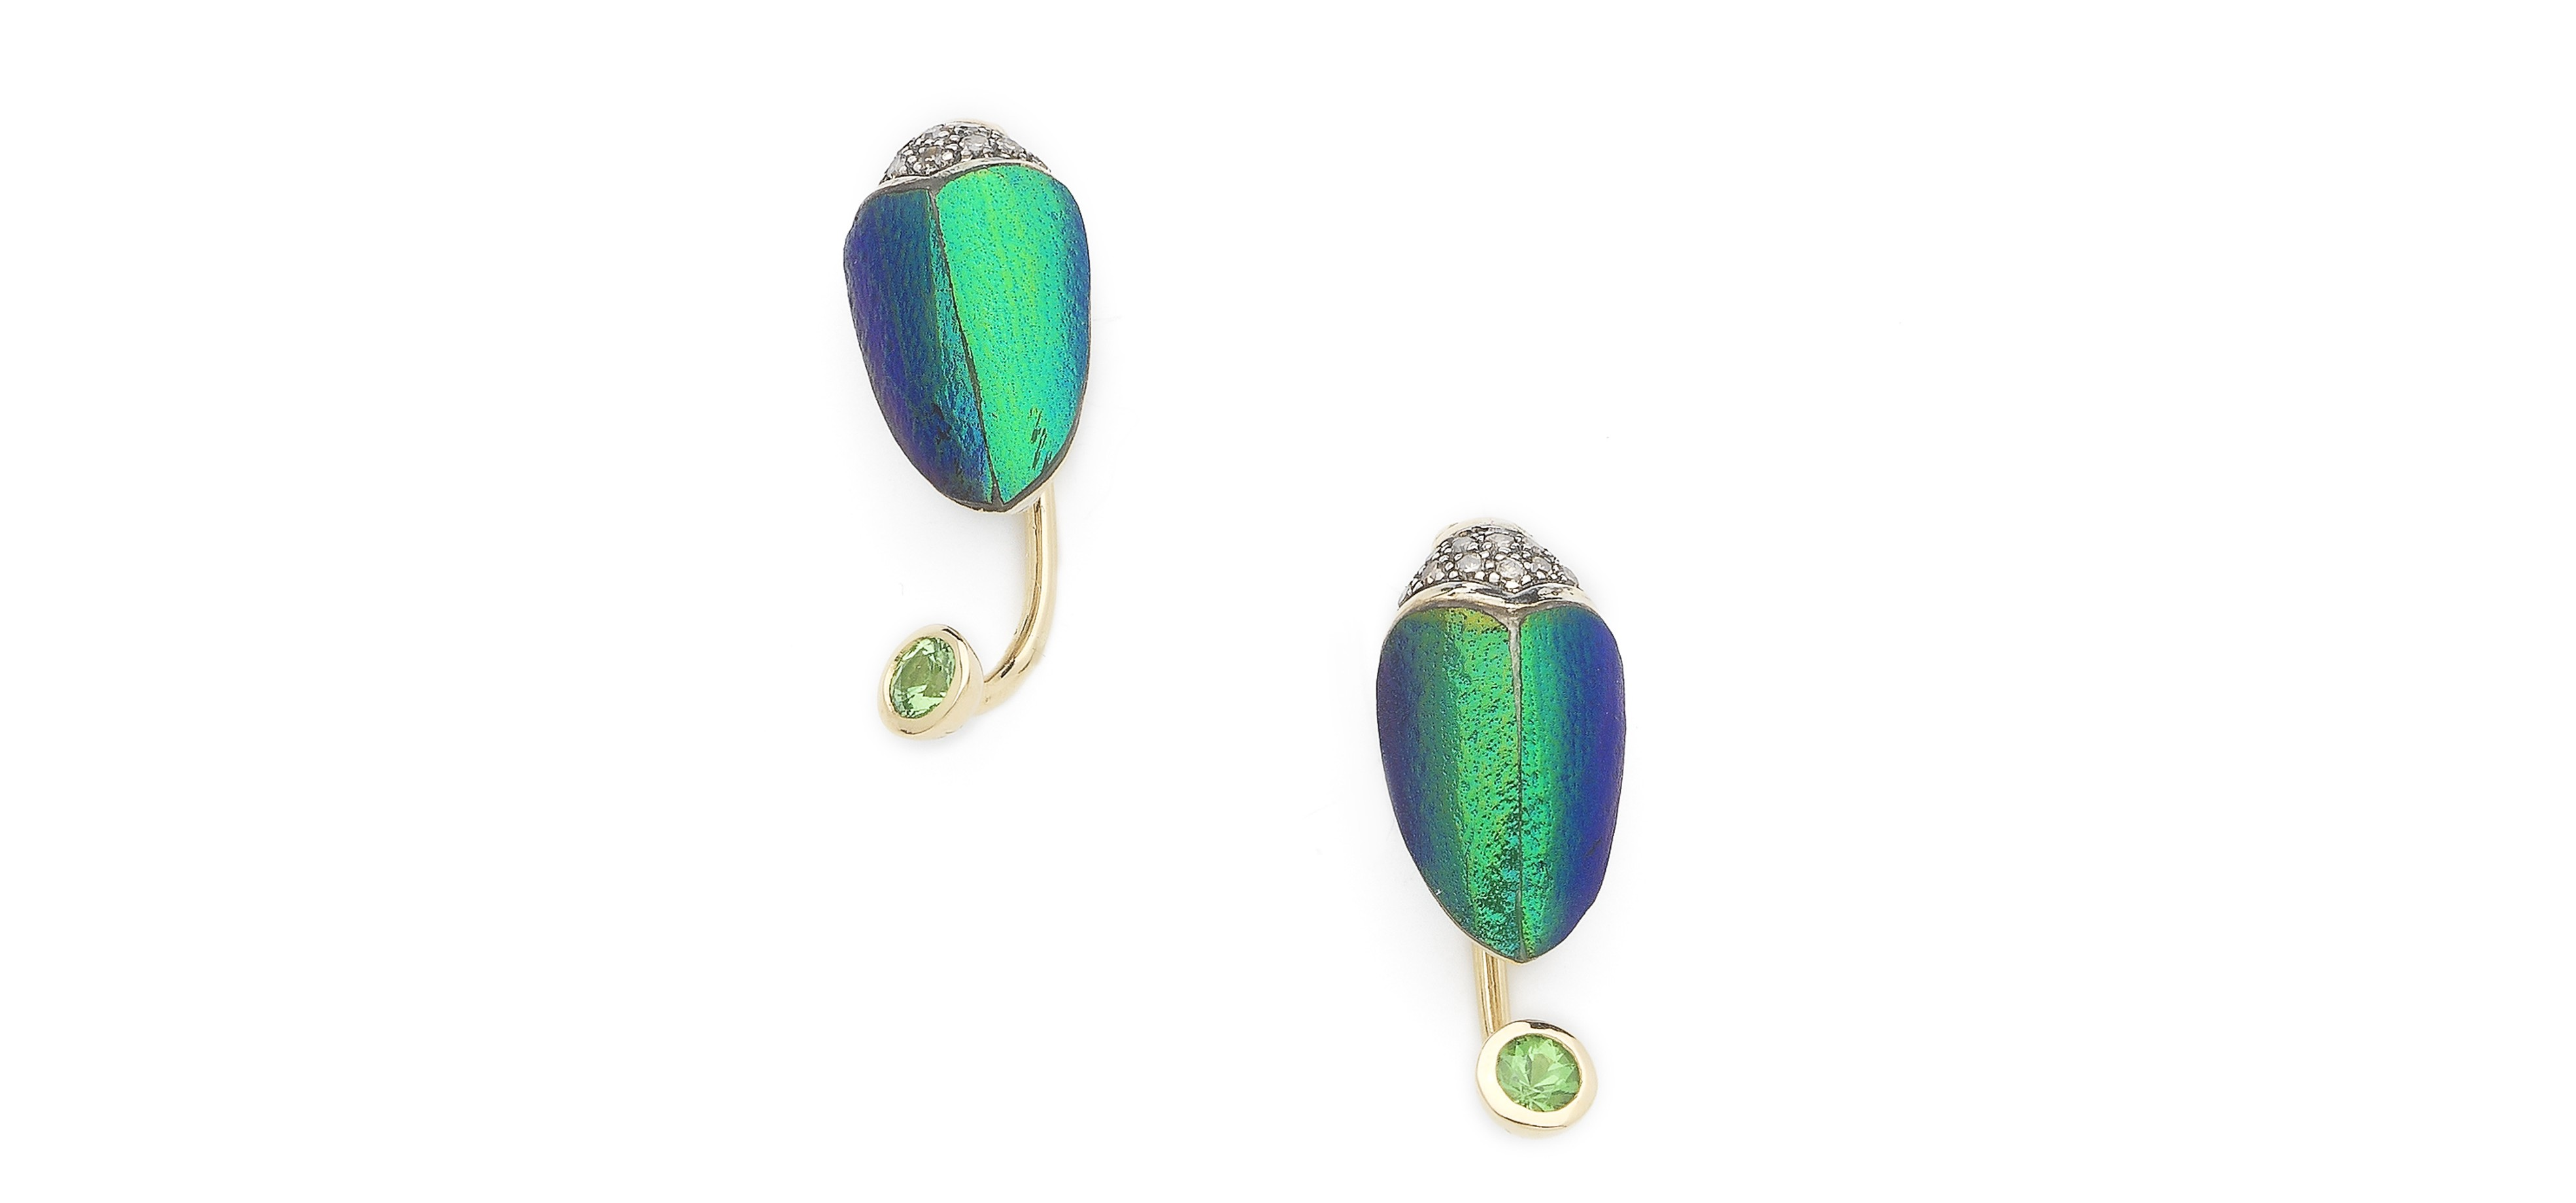 bibi-van-der-velden-scarab-collection-scarab-small-earrings-hanging-part-sterling-silver-18-ct-yellow-gold-scarab-wings-green-tsavorites-white-diamonds-zoom